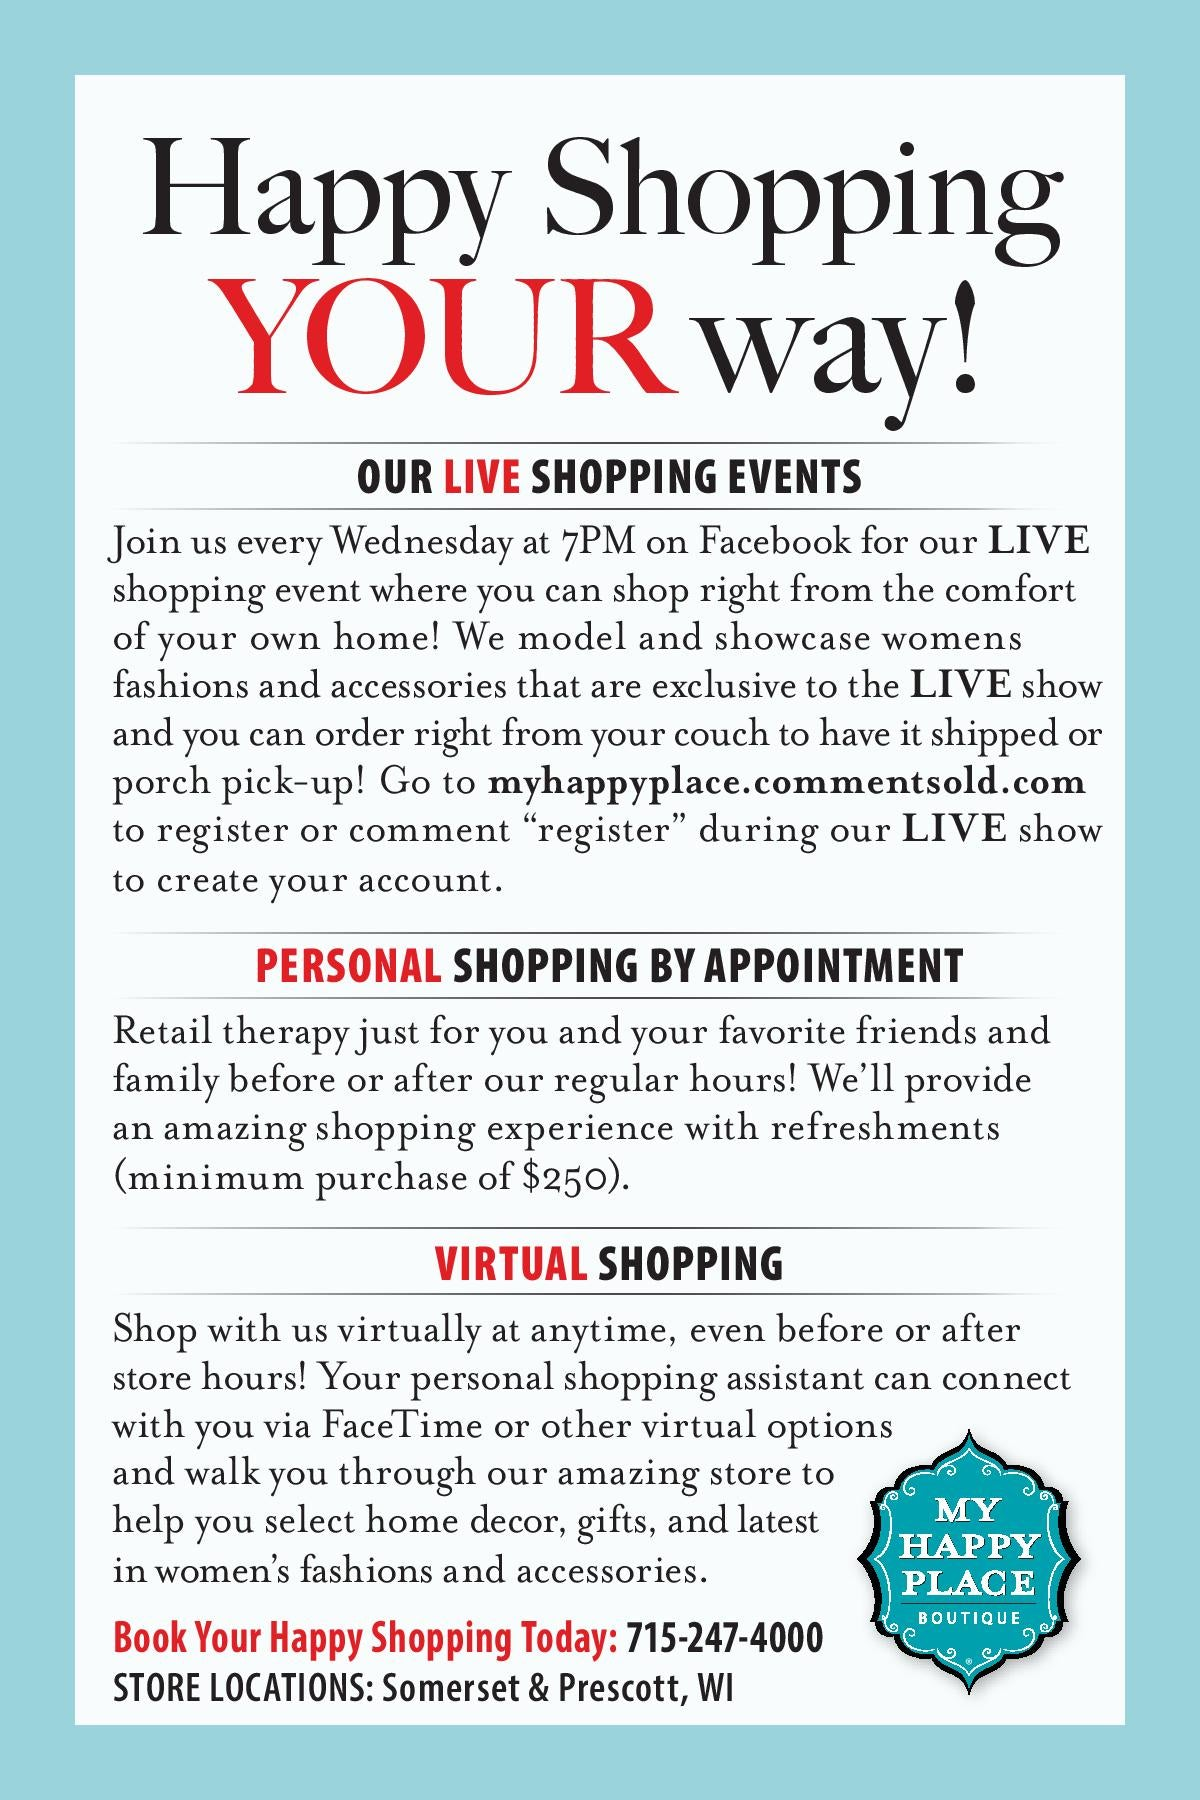 How to Shop Your Way